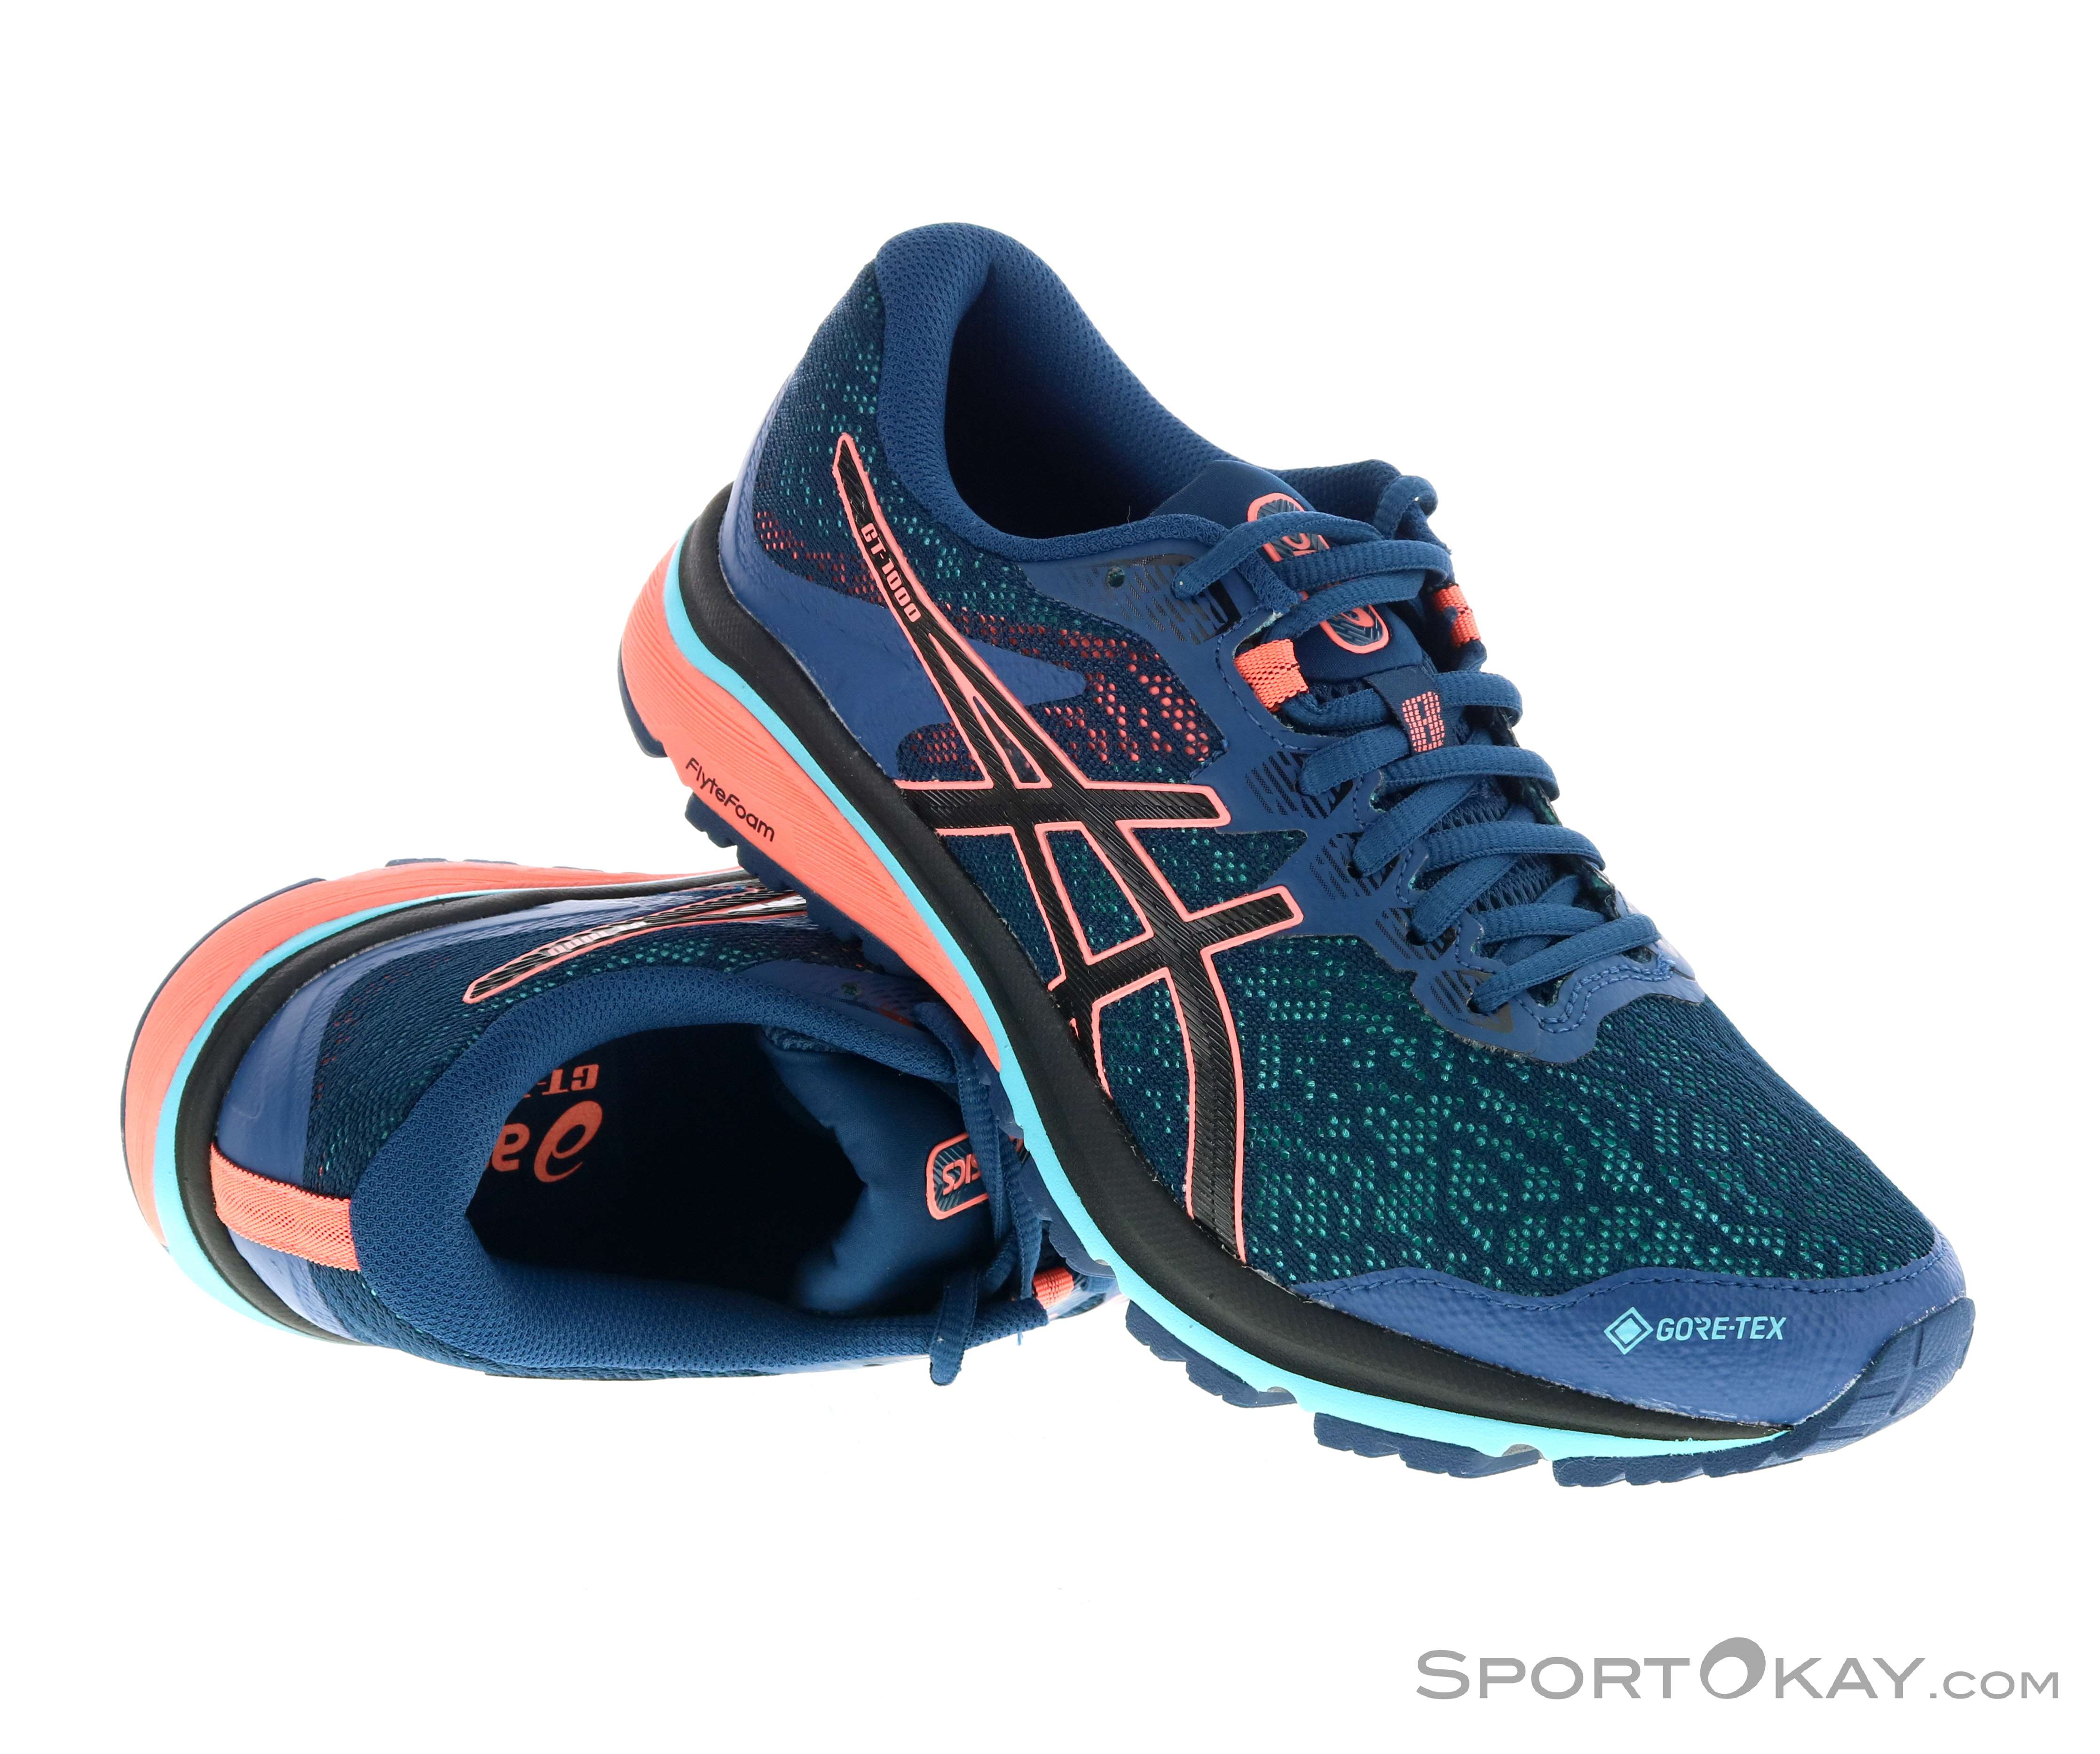 Asics Asics GT-1000 8 G-TX Womens Running Shoes Gore-Tex